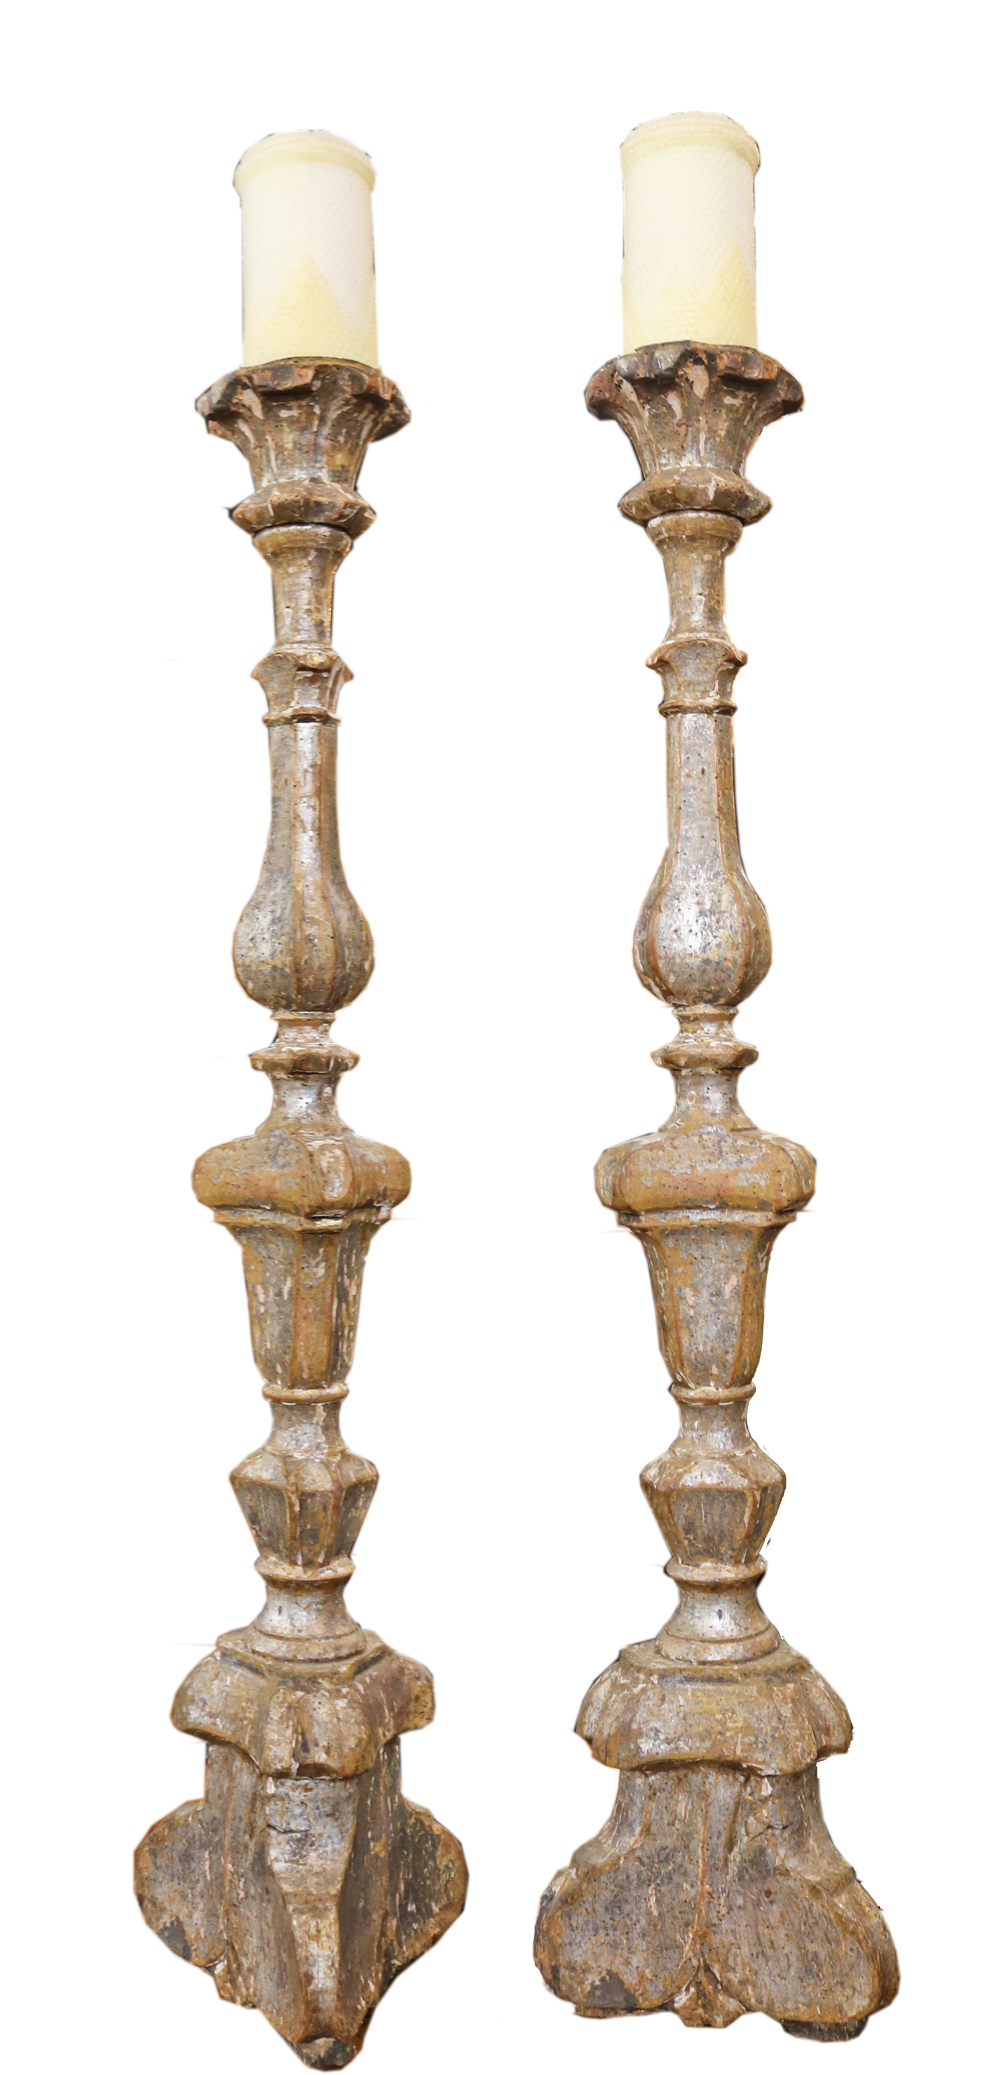 A Rare Pair of Grandly Scaled 16th Century Italian Pricket Sticks No. 4746